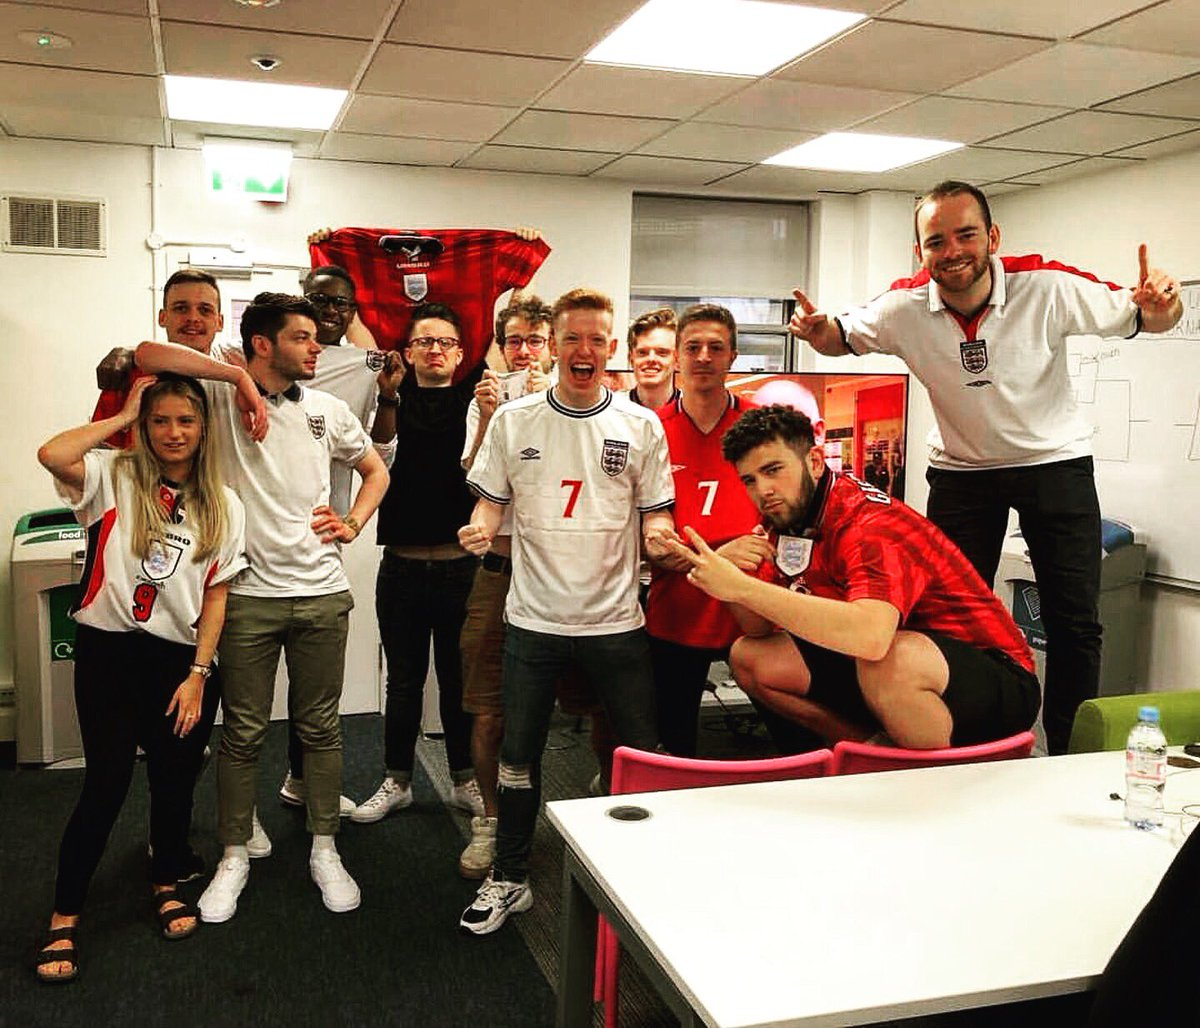 We are going live on @footballdailyuk at 6.30pm with @SoccerAM &amp; former Three Lions international @RyanMason to cover England vs Tunisia    Get your questions in for the pre match build up below   #WorldCup  #ThreeLions  <br>http://pic.twitter.com/divhFDVUt9